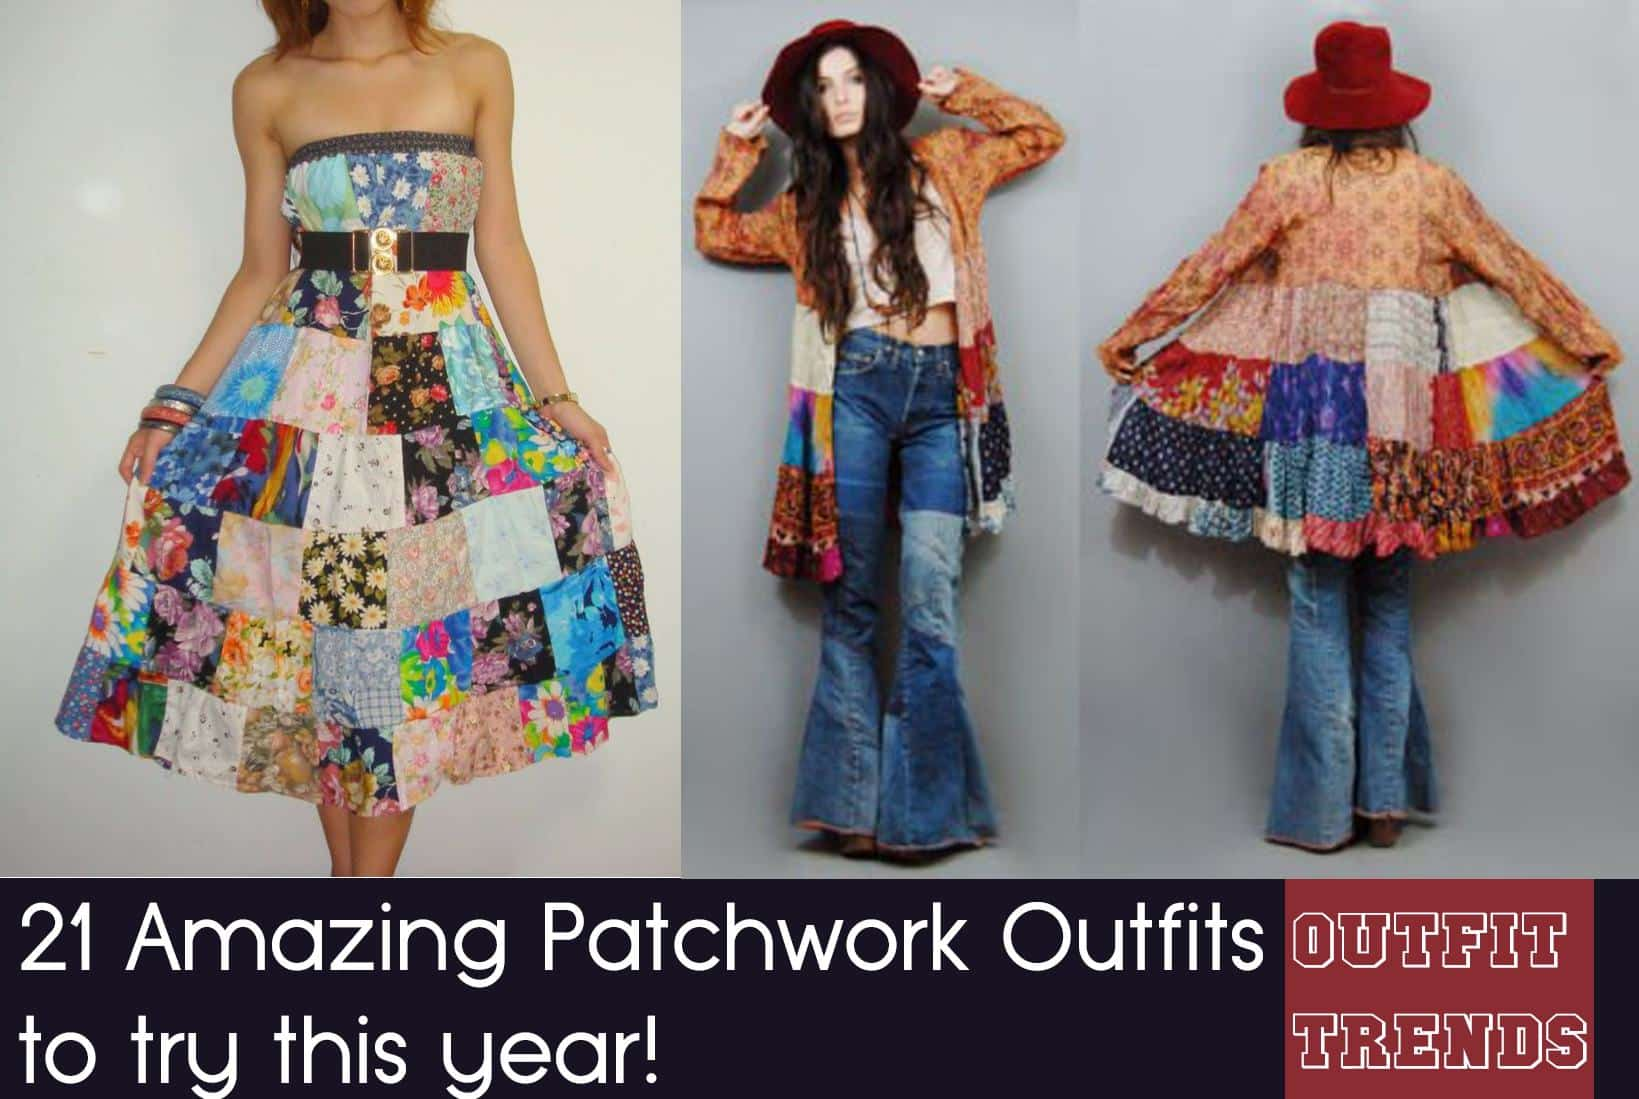 Patchwork Outfits21 Ways to Wear Patchwork Outfits this Year